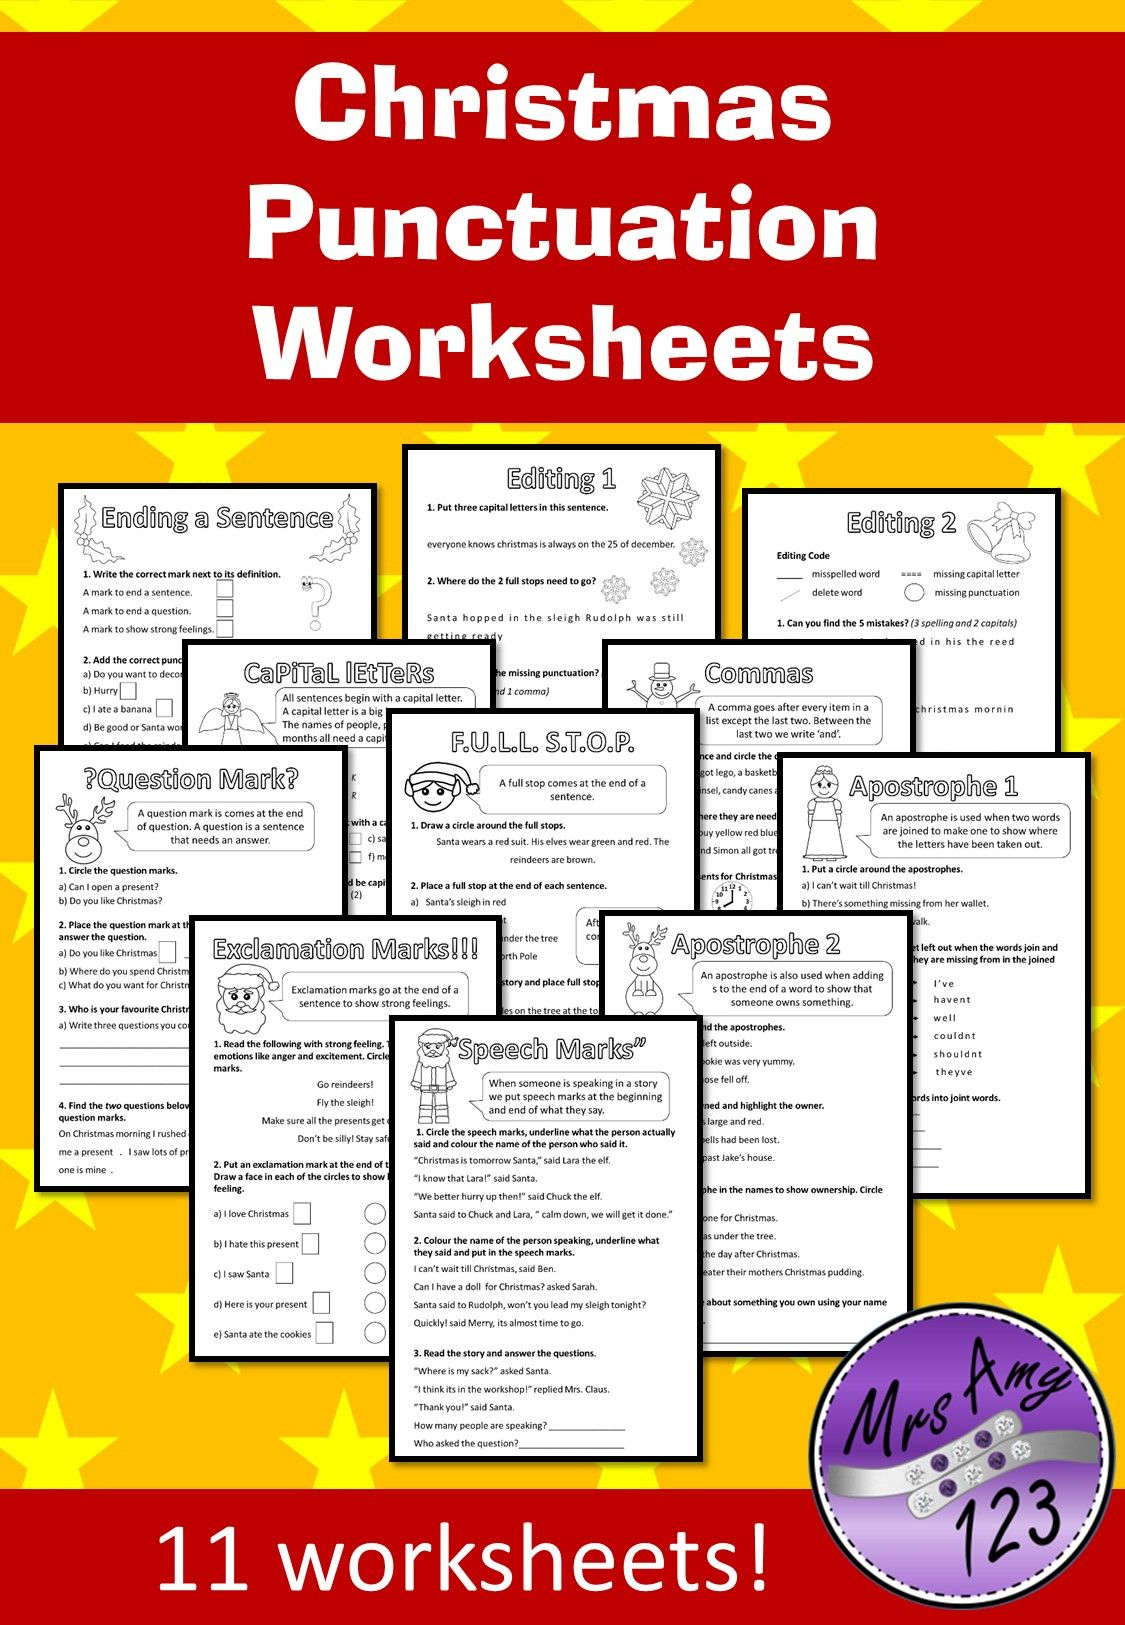 Christmas Punctuation Worksheets | Punctuation Worksheets